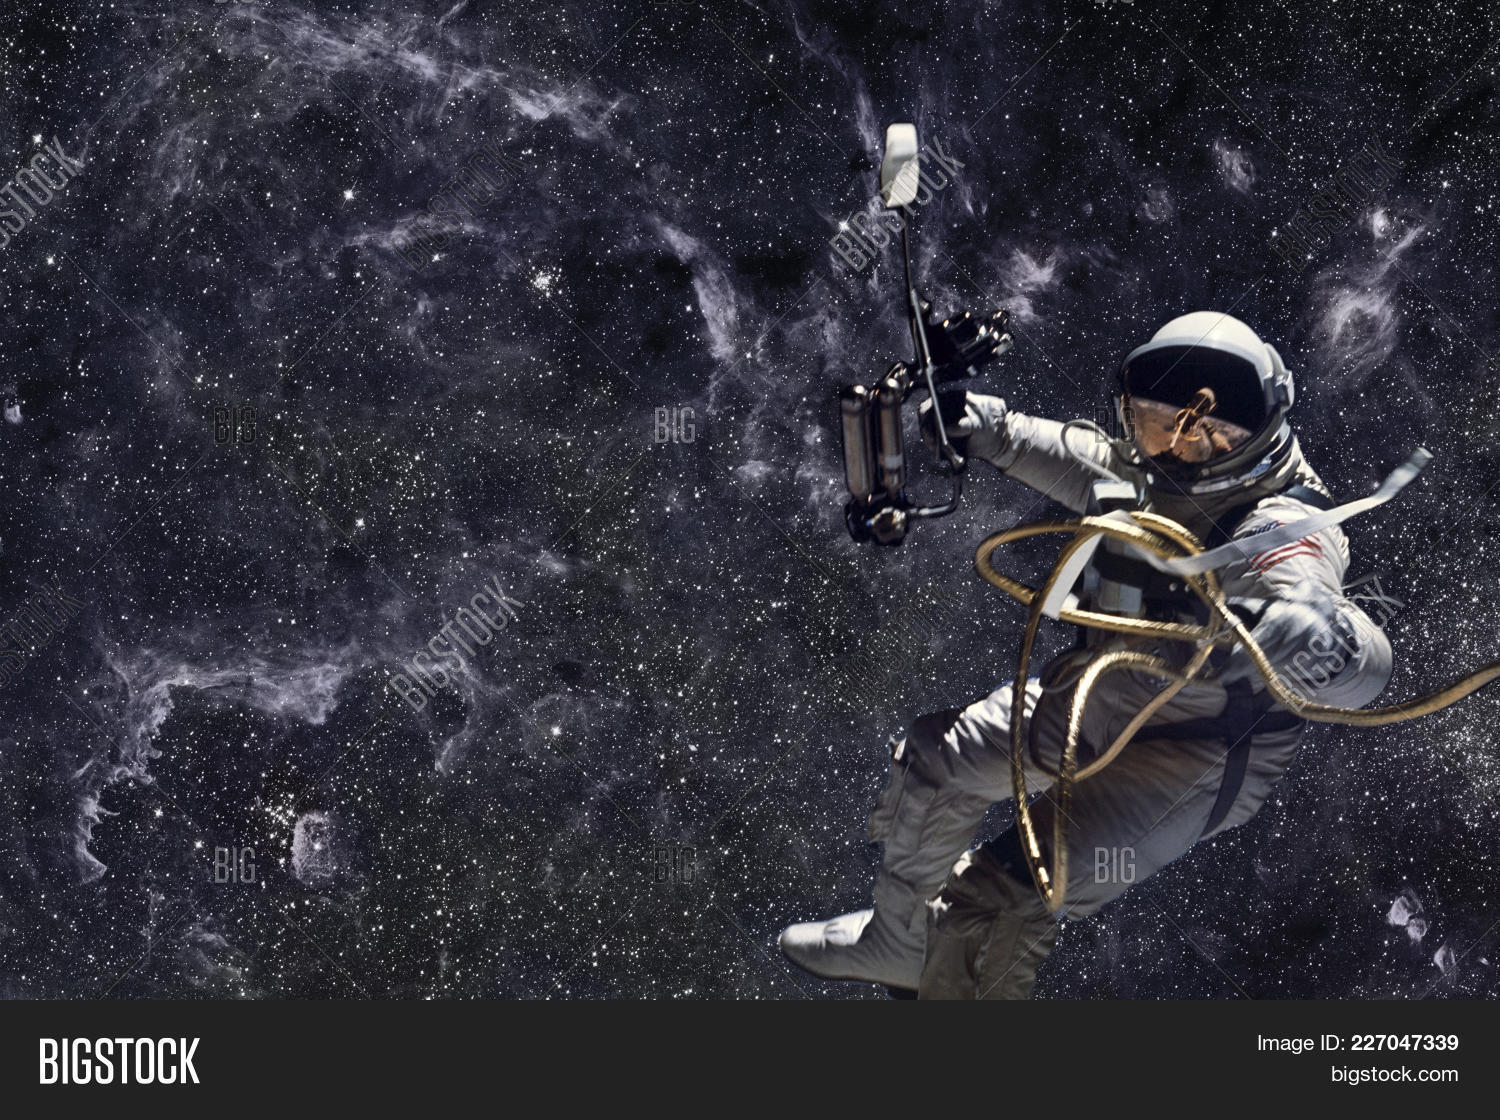 astronaut in deep space - photo #14